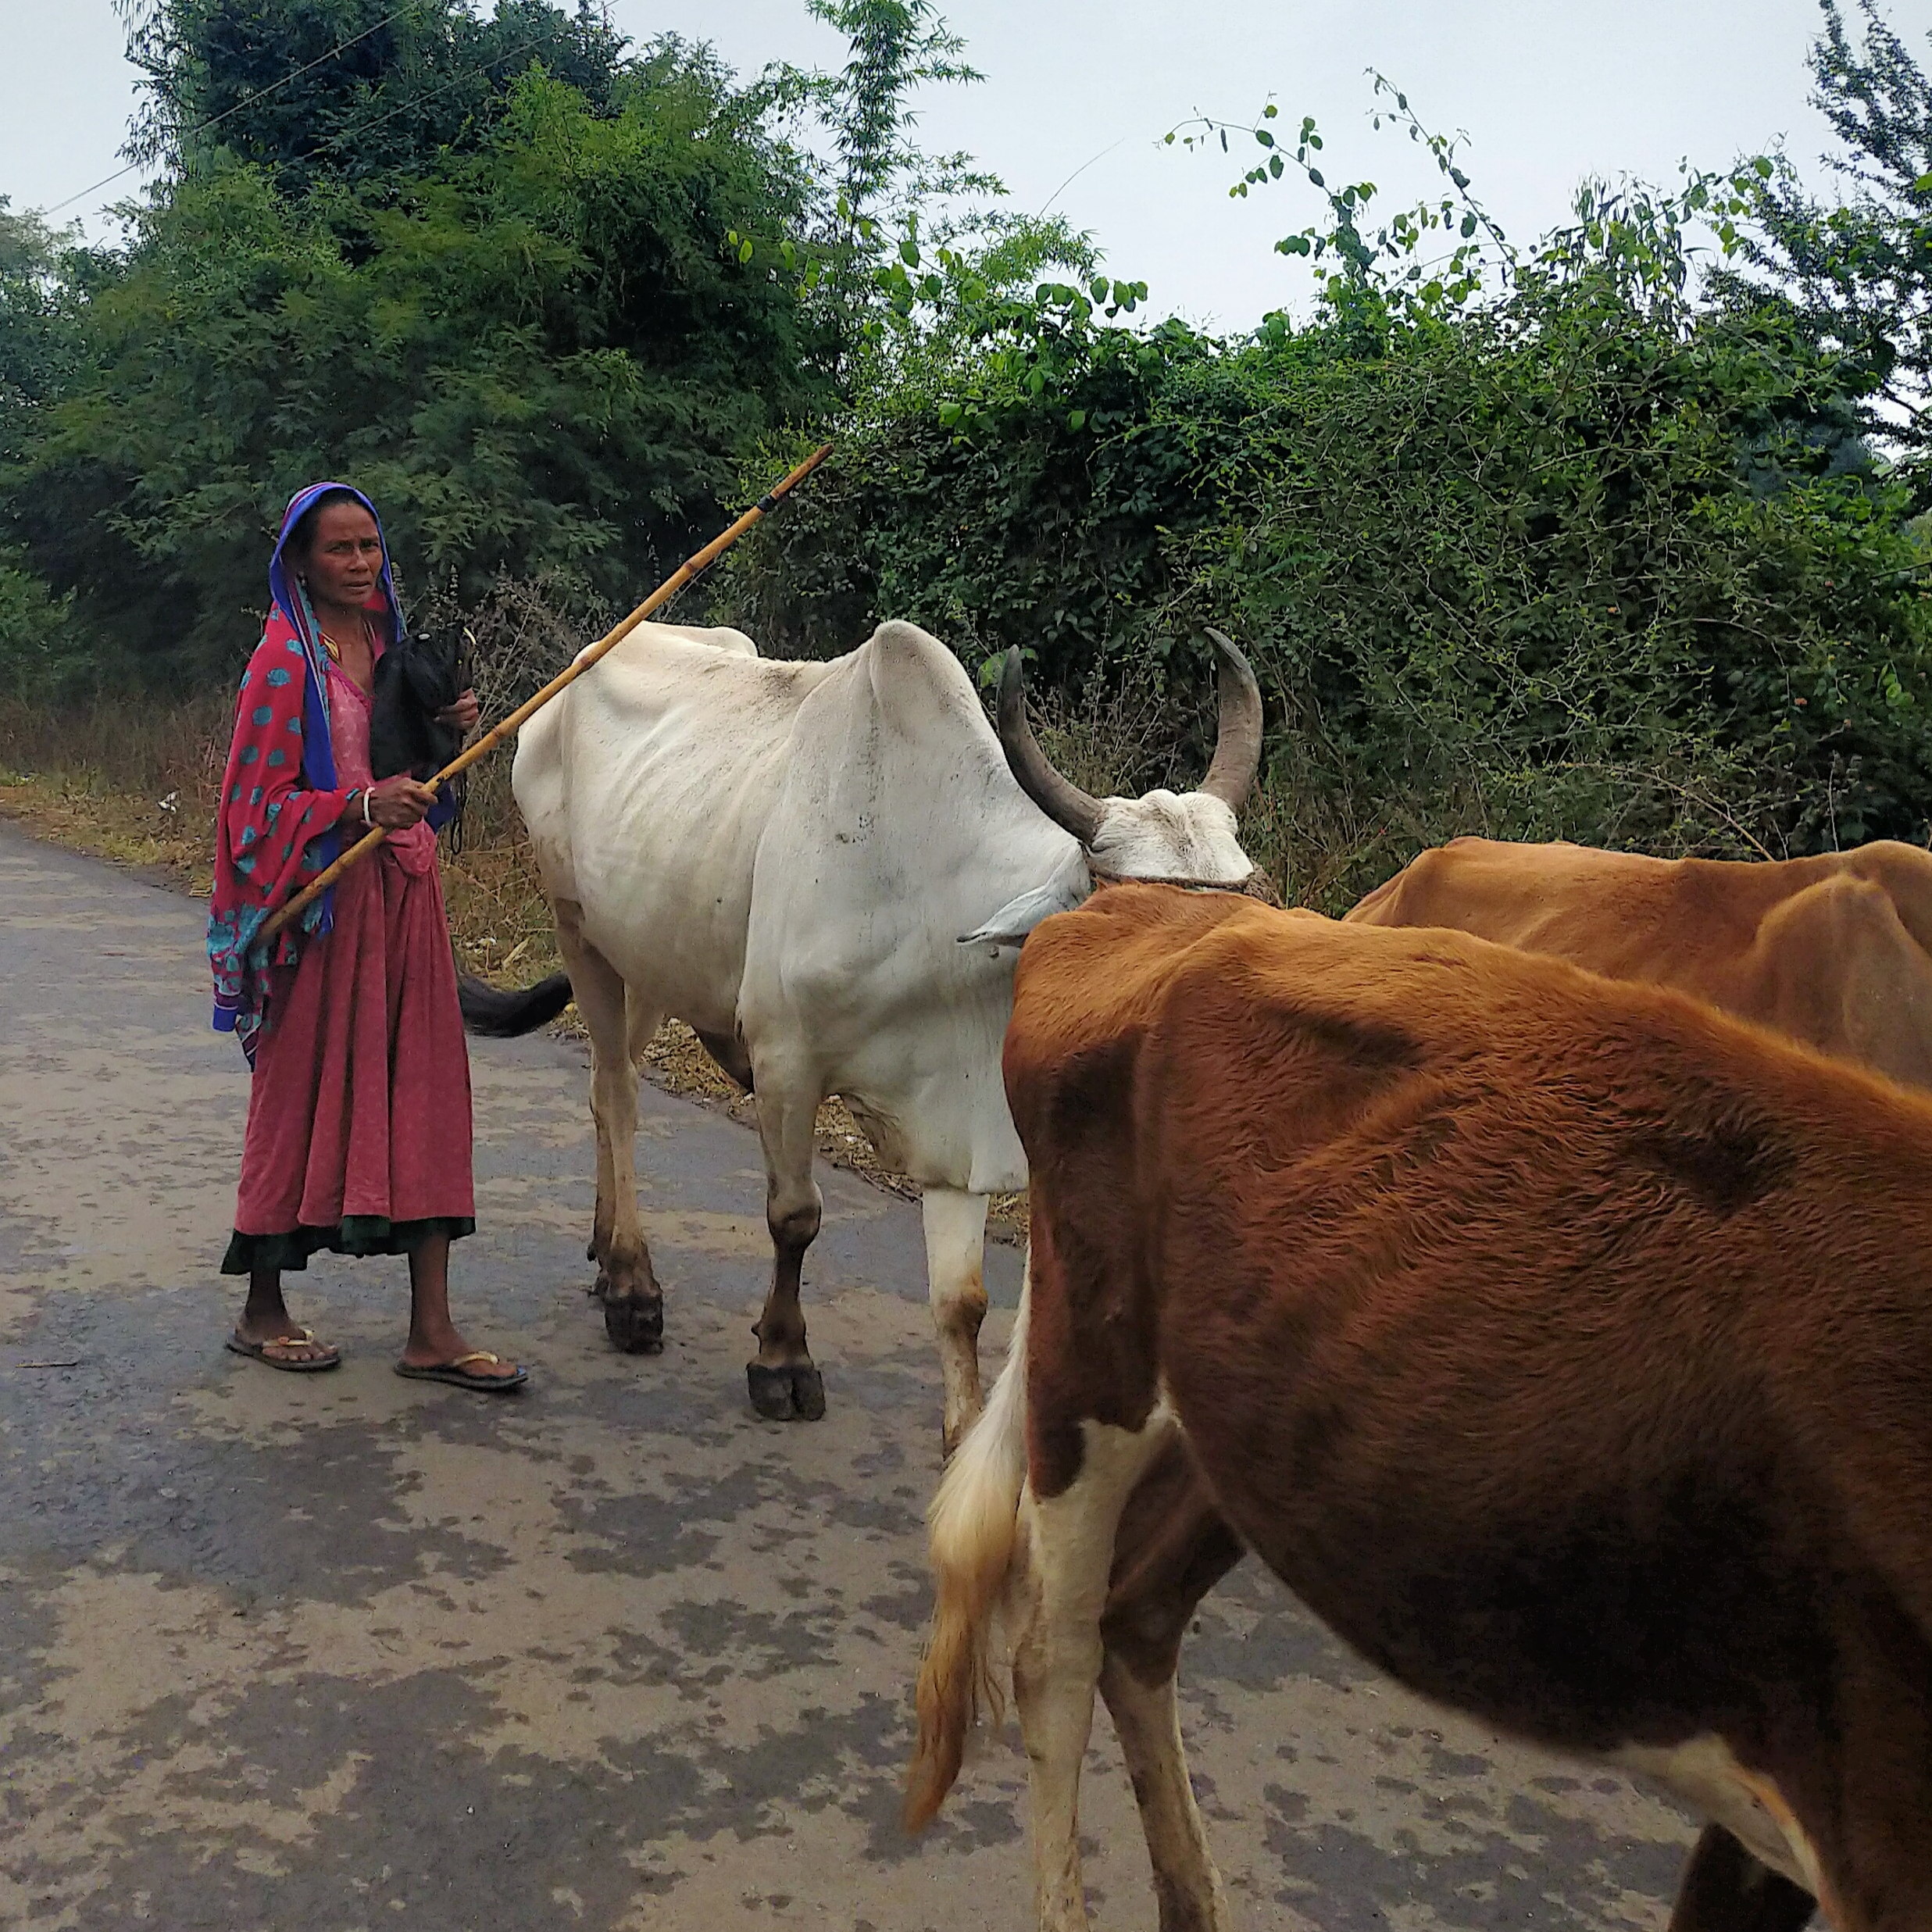 A village woman with cattle